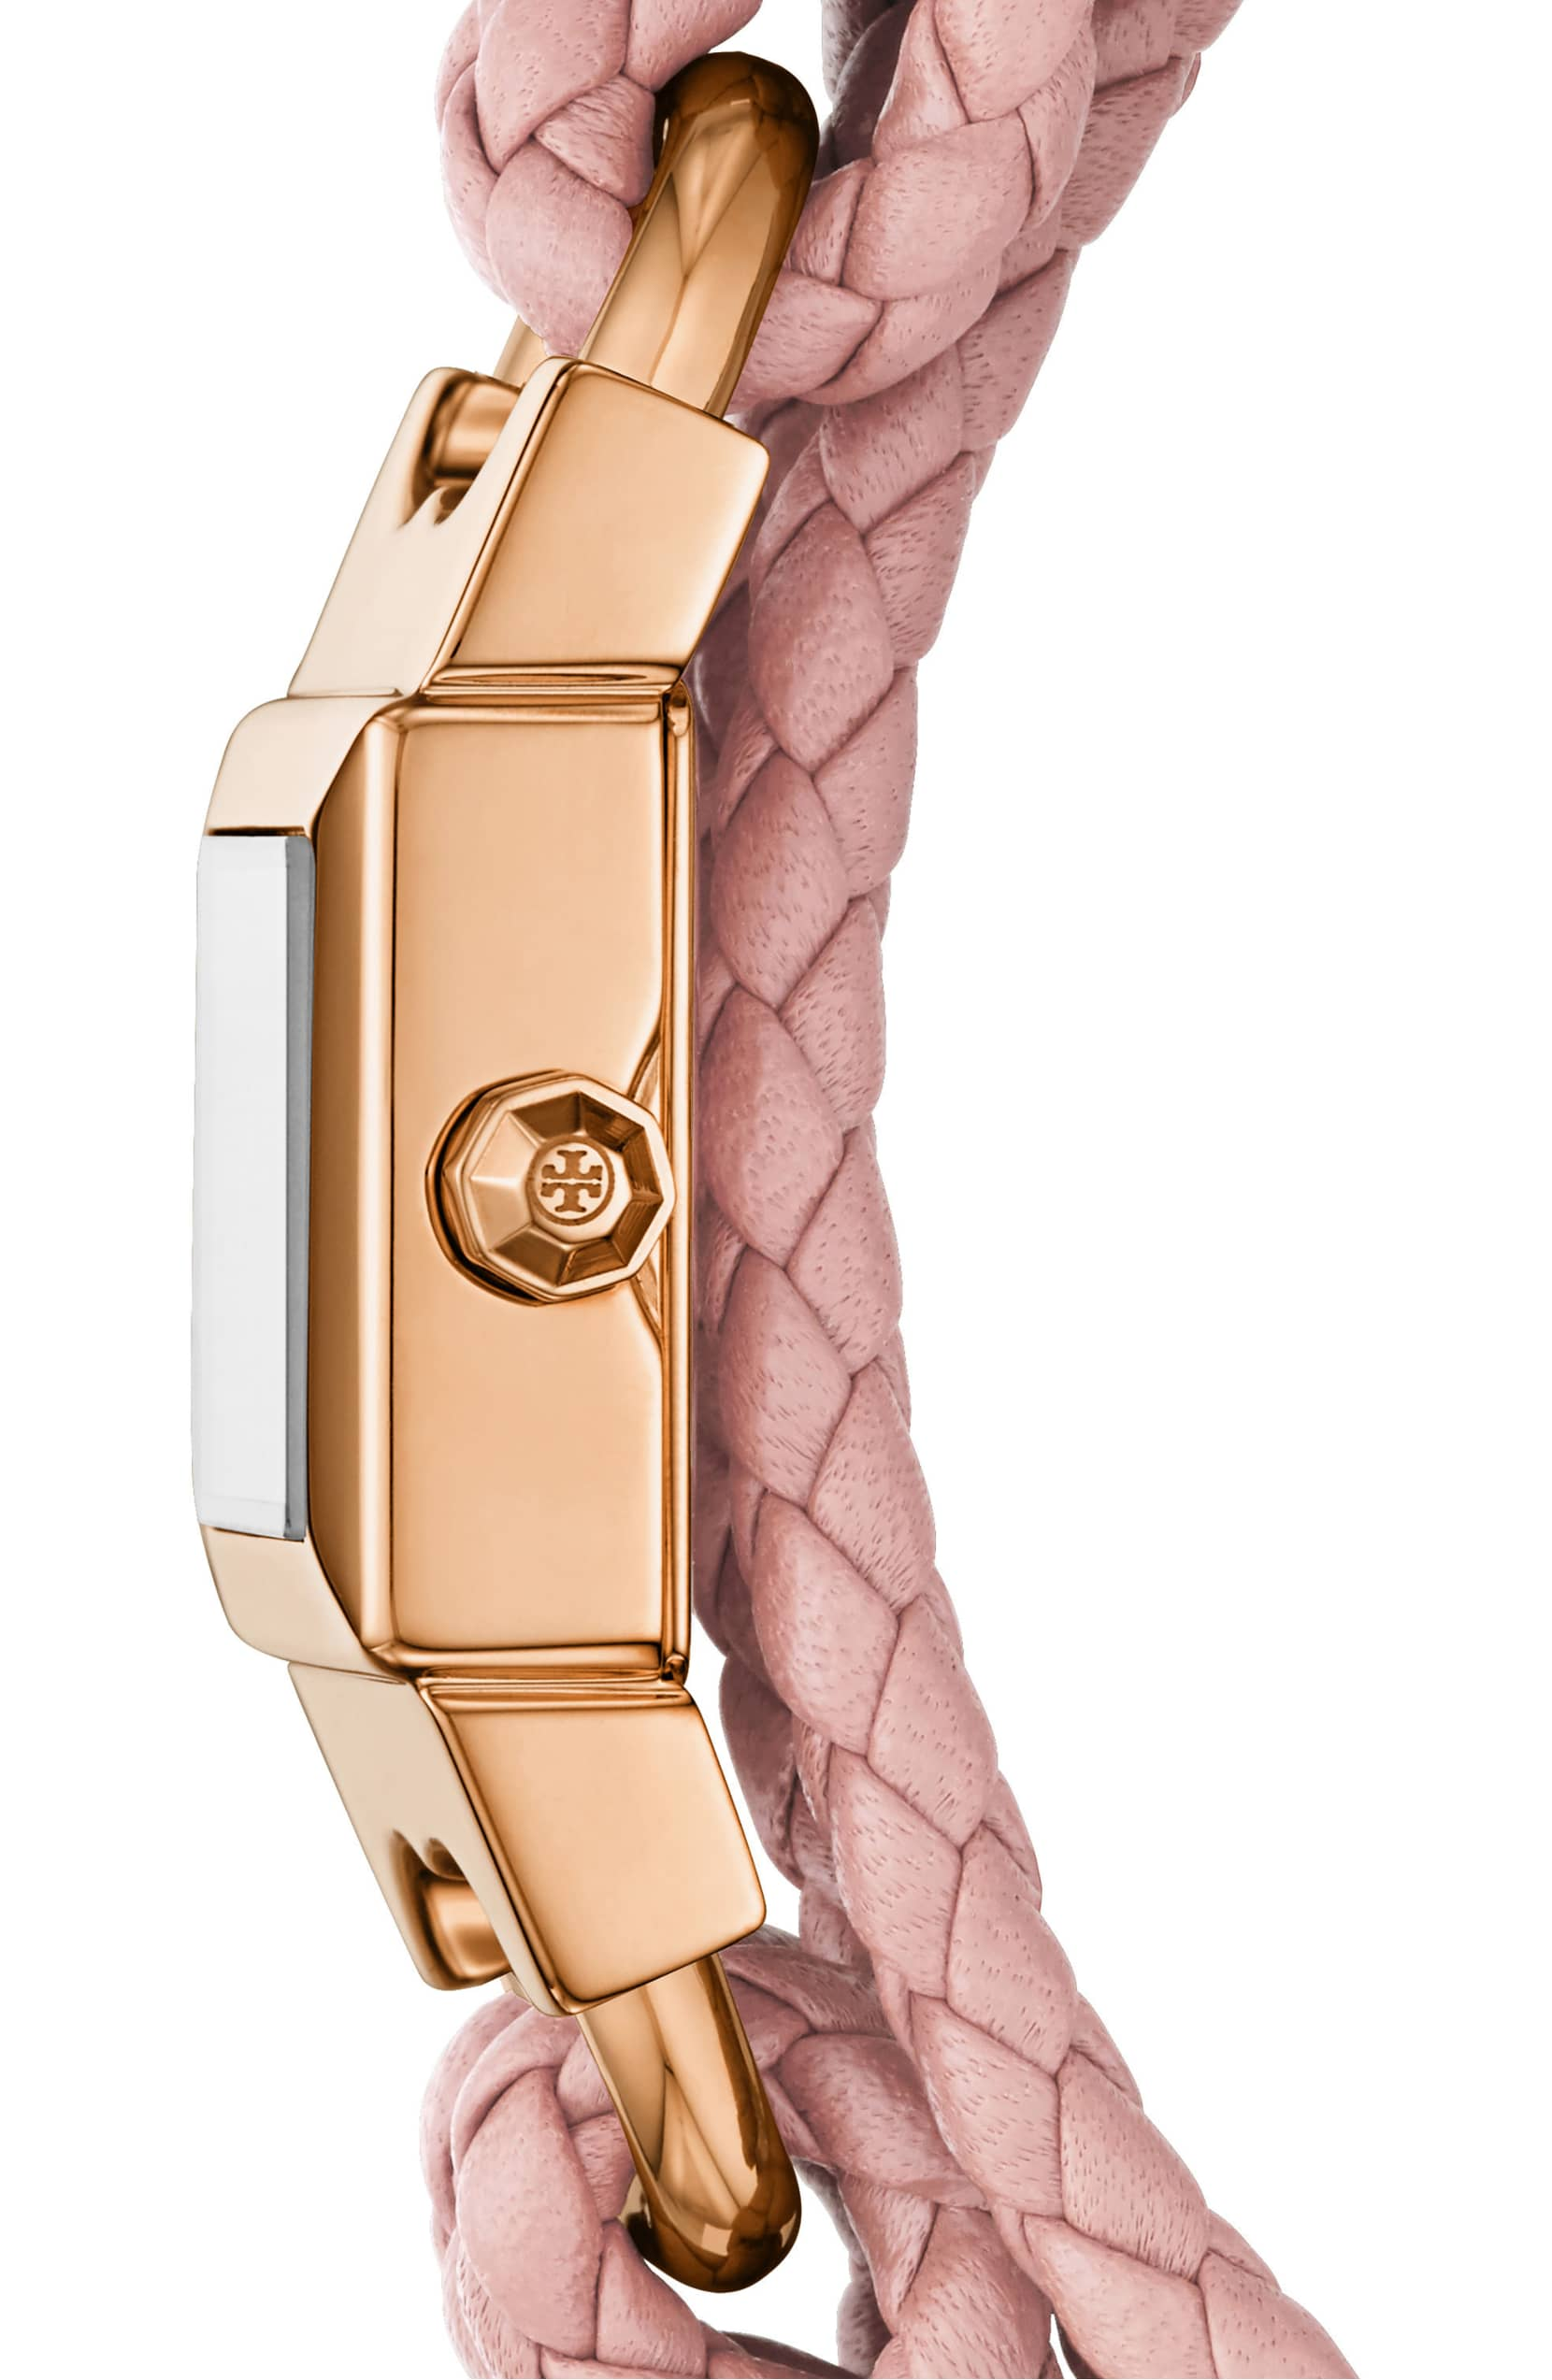 Tory Burch Gemini Link Square Leather Strap Watch